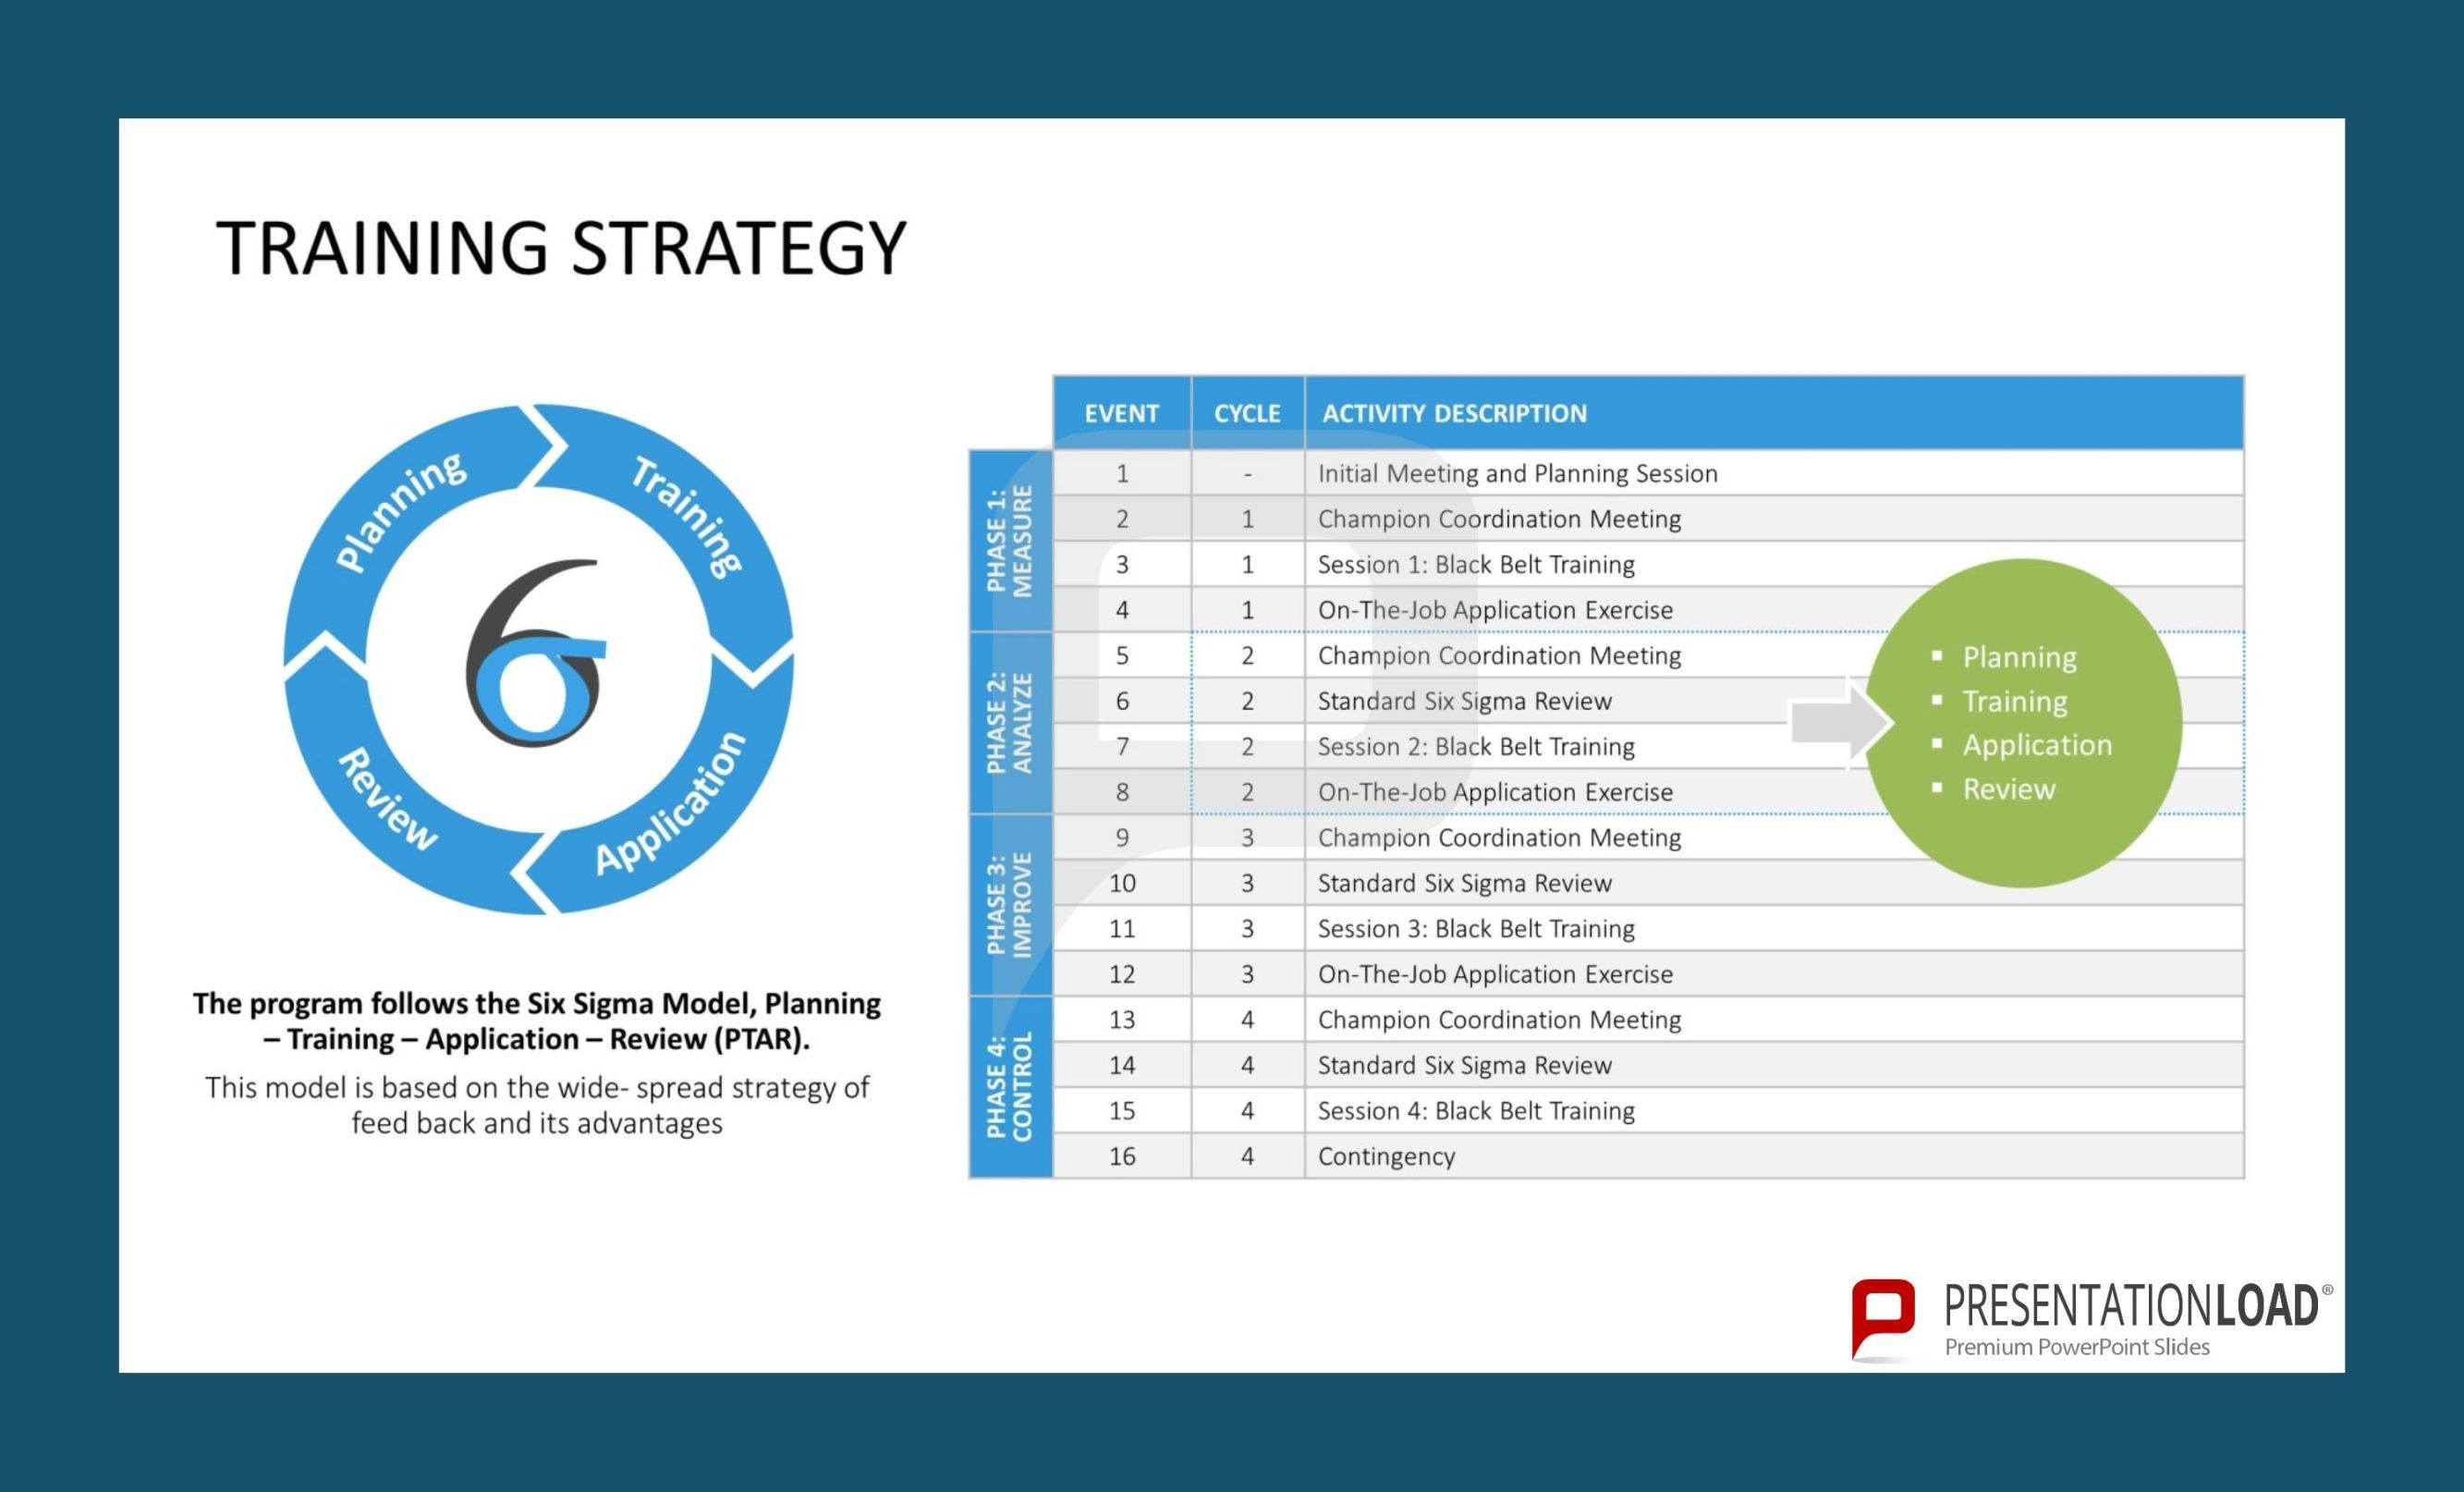 Training strategy six sigma powerpoint templates httpwww training strategy six sigma powerpoint templates httppresentationloadsix sigma powerpoint templateml toneelgroepblik Choice Image